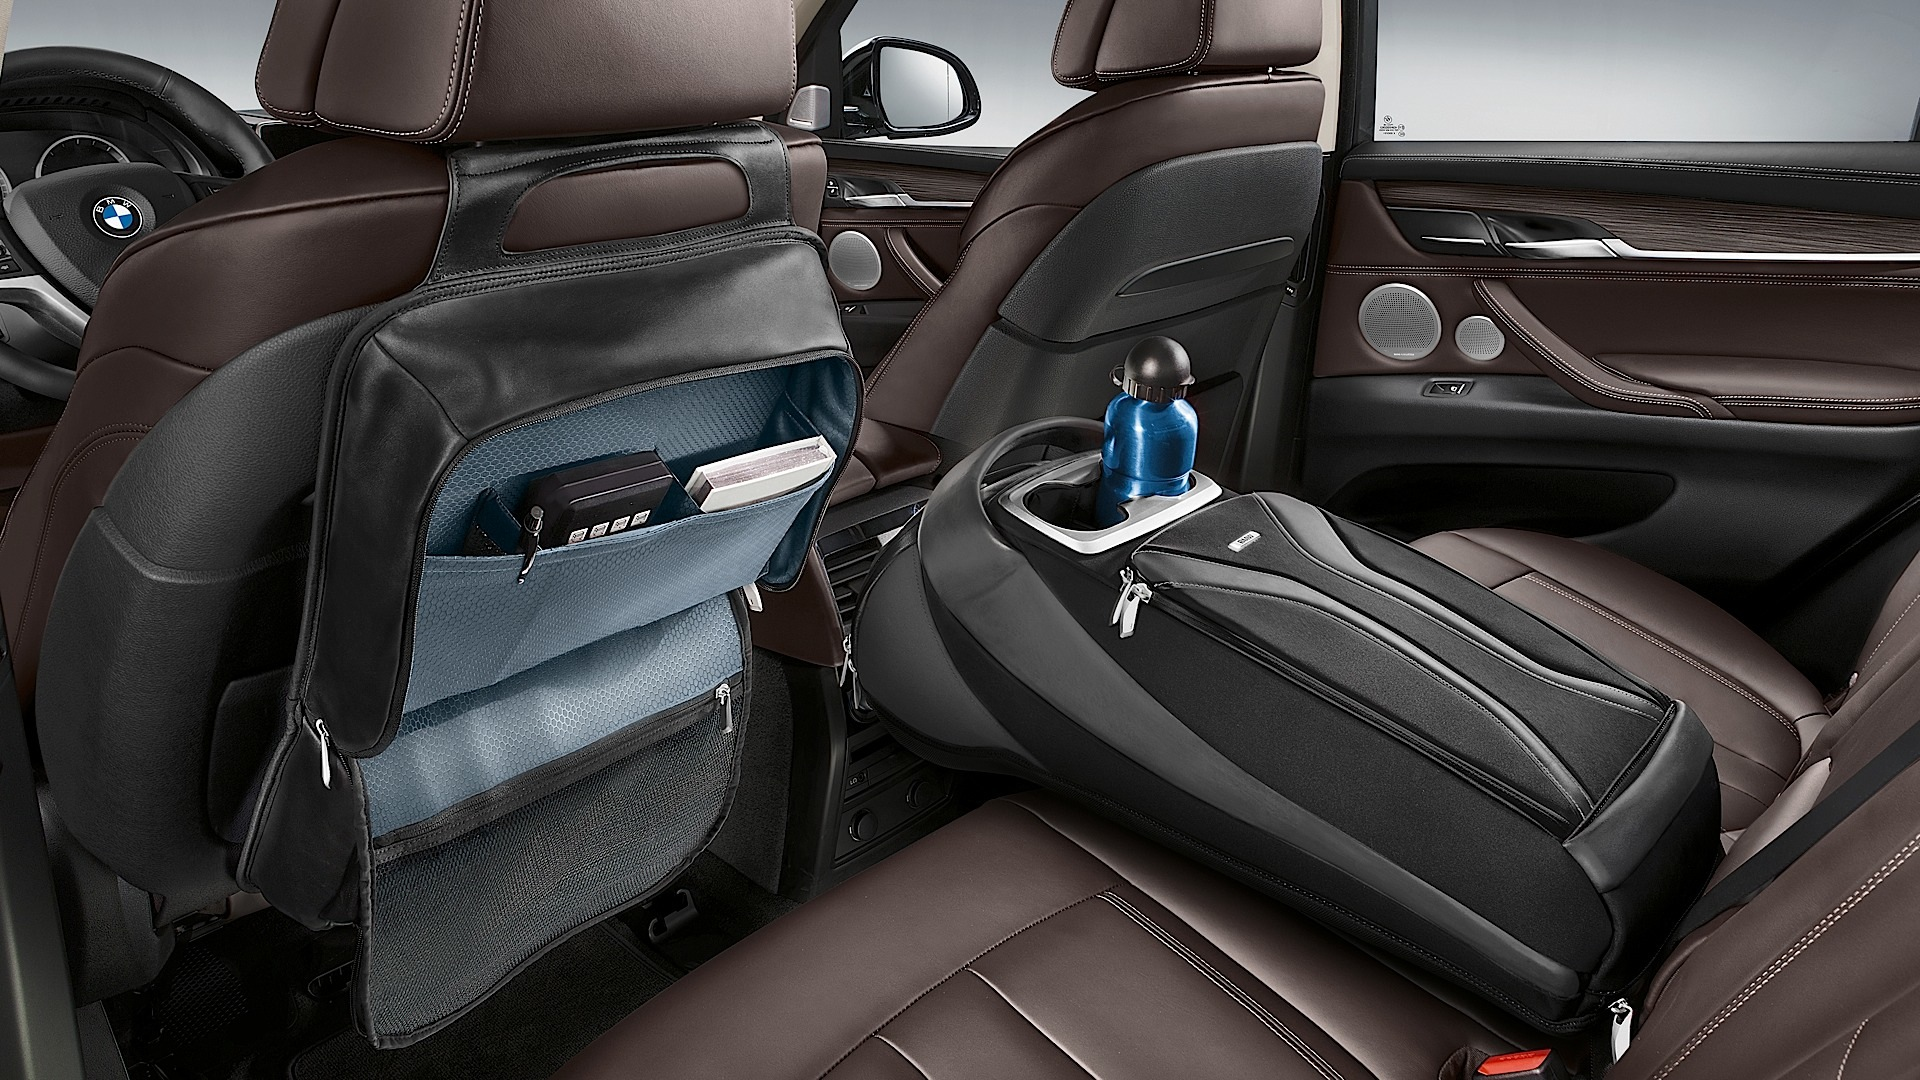 Bmw X5 Floor Mats BMW Launches New Set of Accessories for the F15 X5 - autoevolution